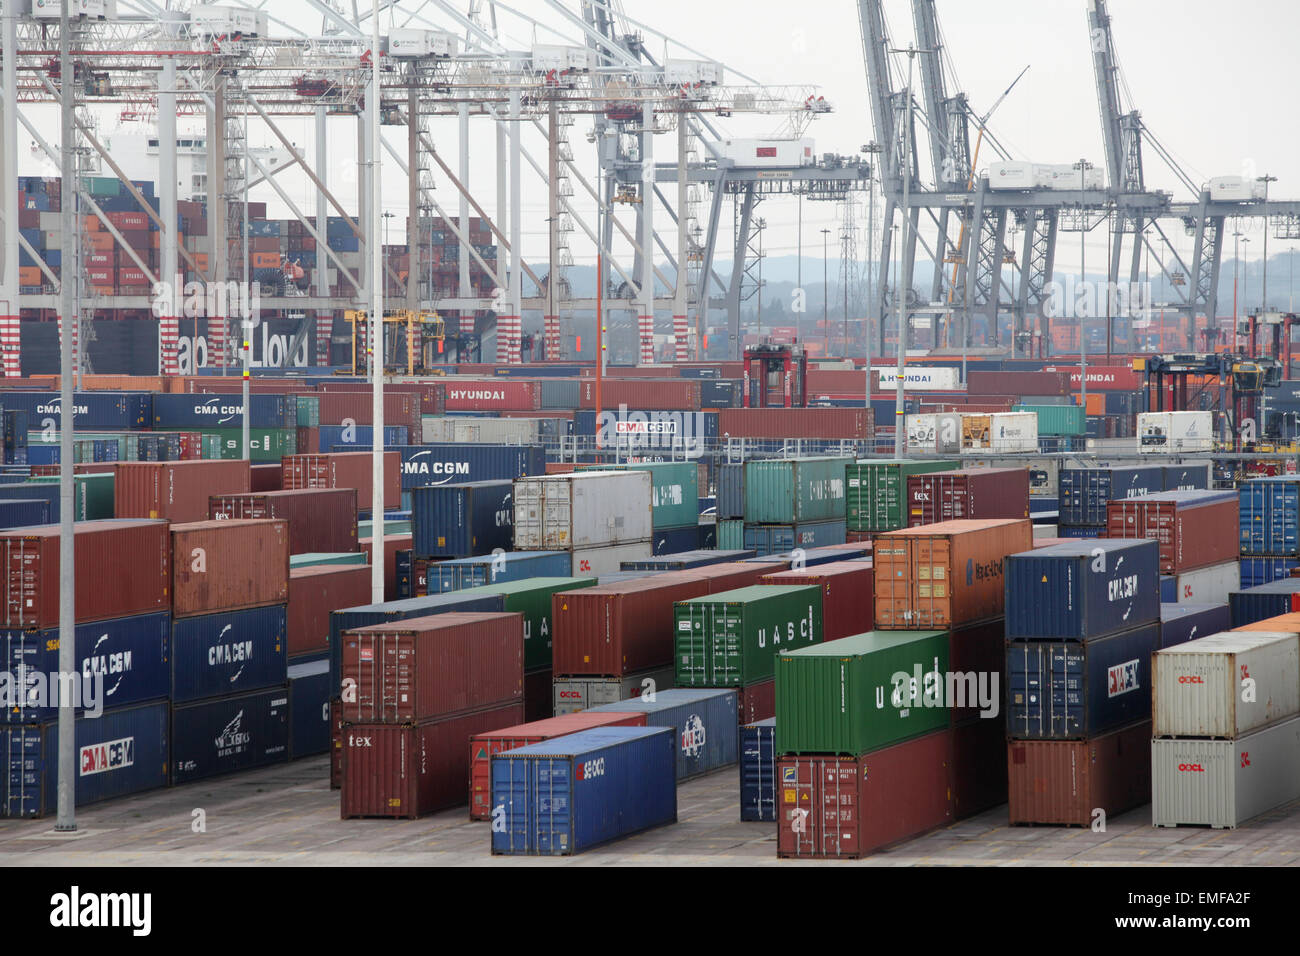 DP World container port in Southampton Docks - Stock Image